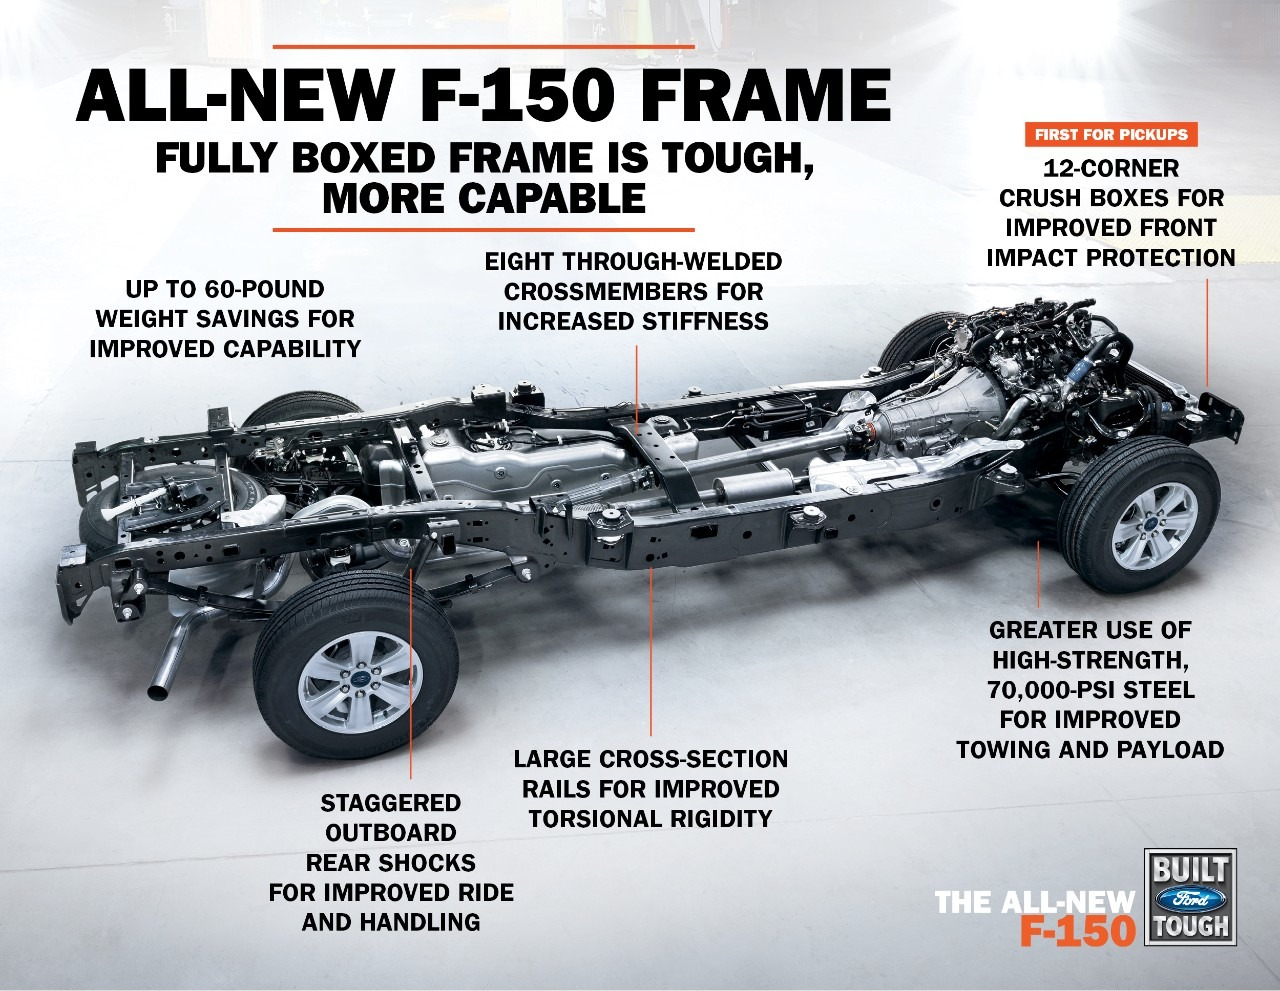 likewise ford ranger frame diagram on ford f150 frame diagram 19Passat Wiring Diagram Besides Royal Enfield Bullet 500 Wiring Diagram #3